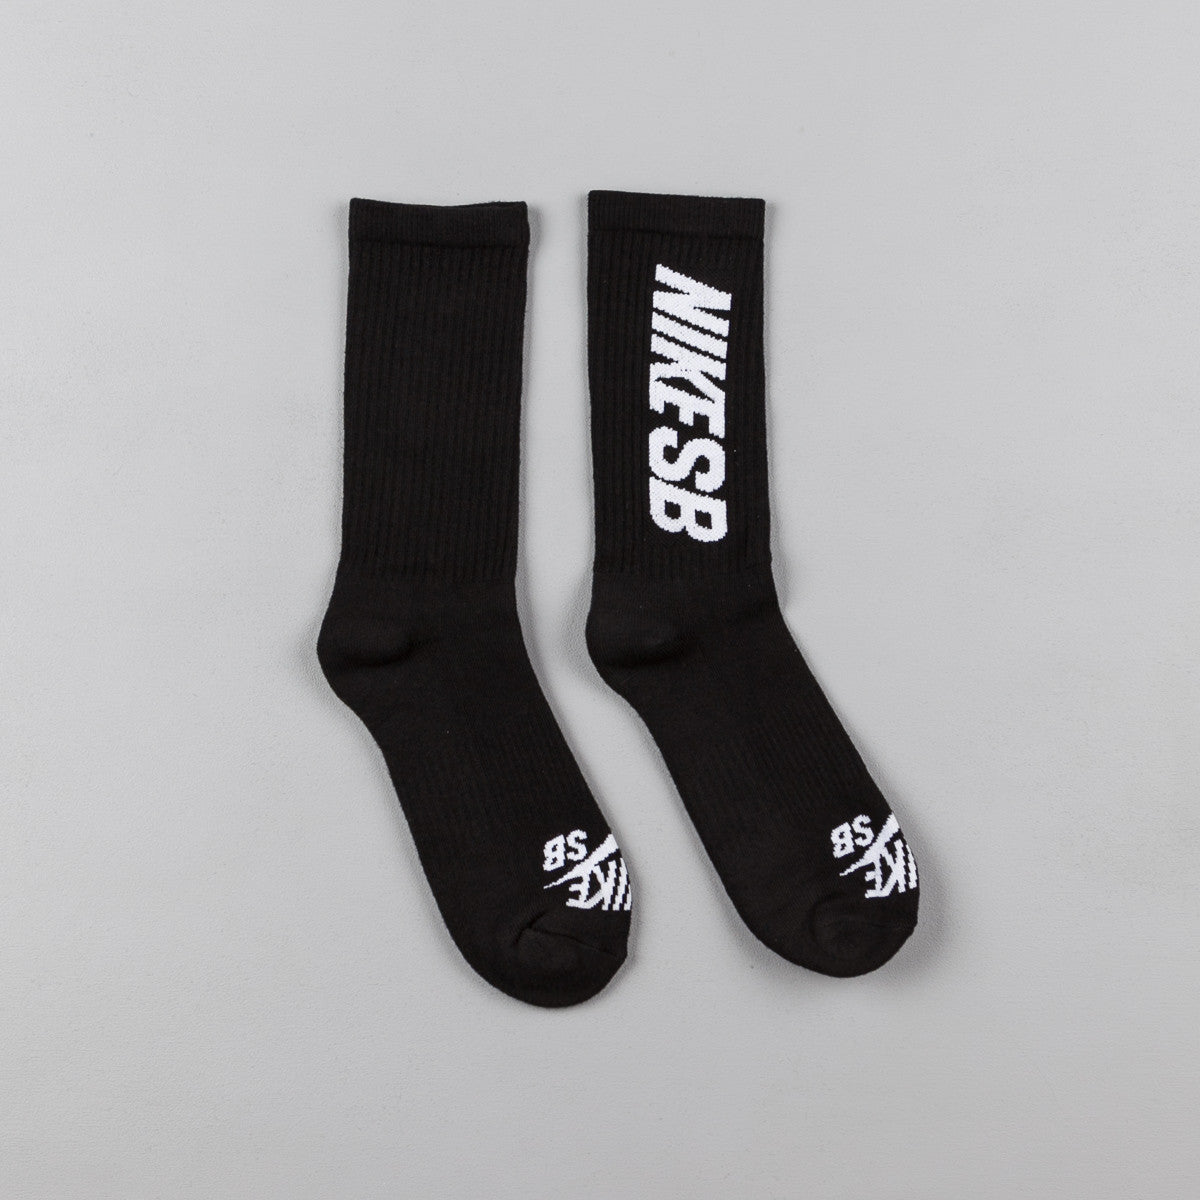 Nike SB Crew Skateboarding Socks (3 Pair) - Black / White